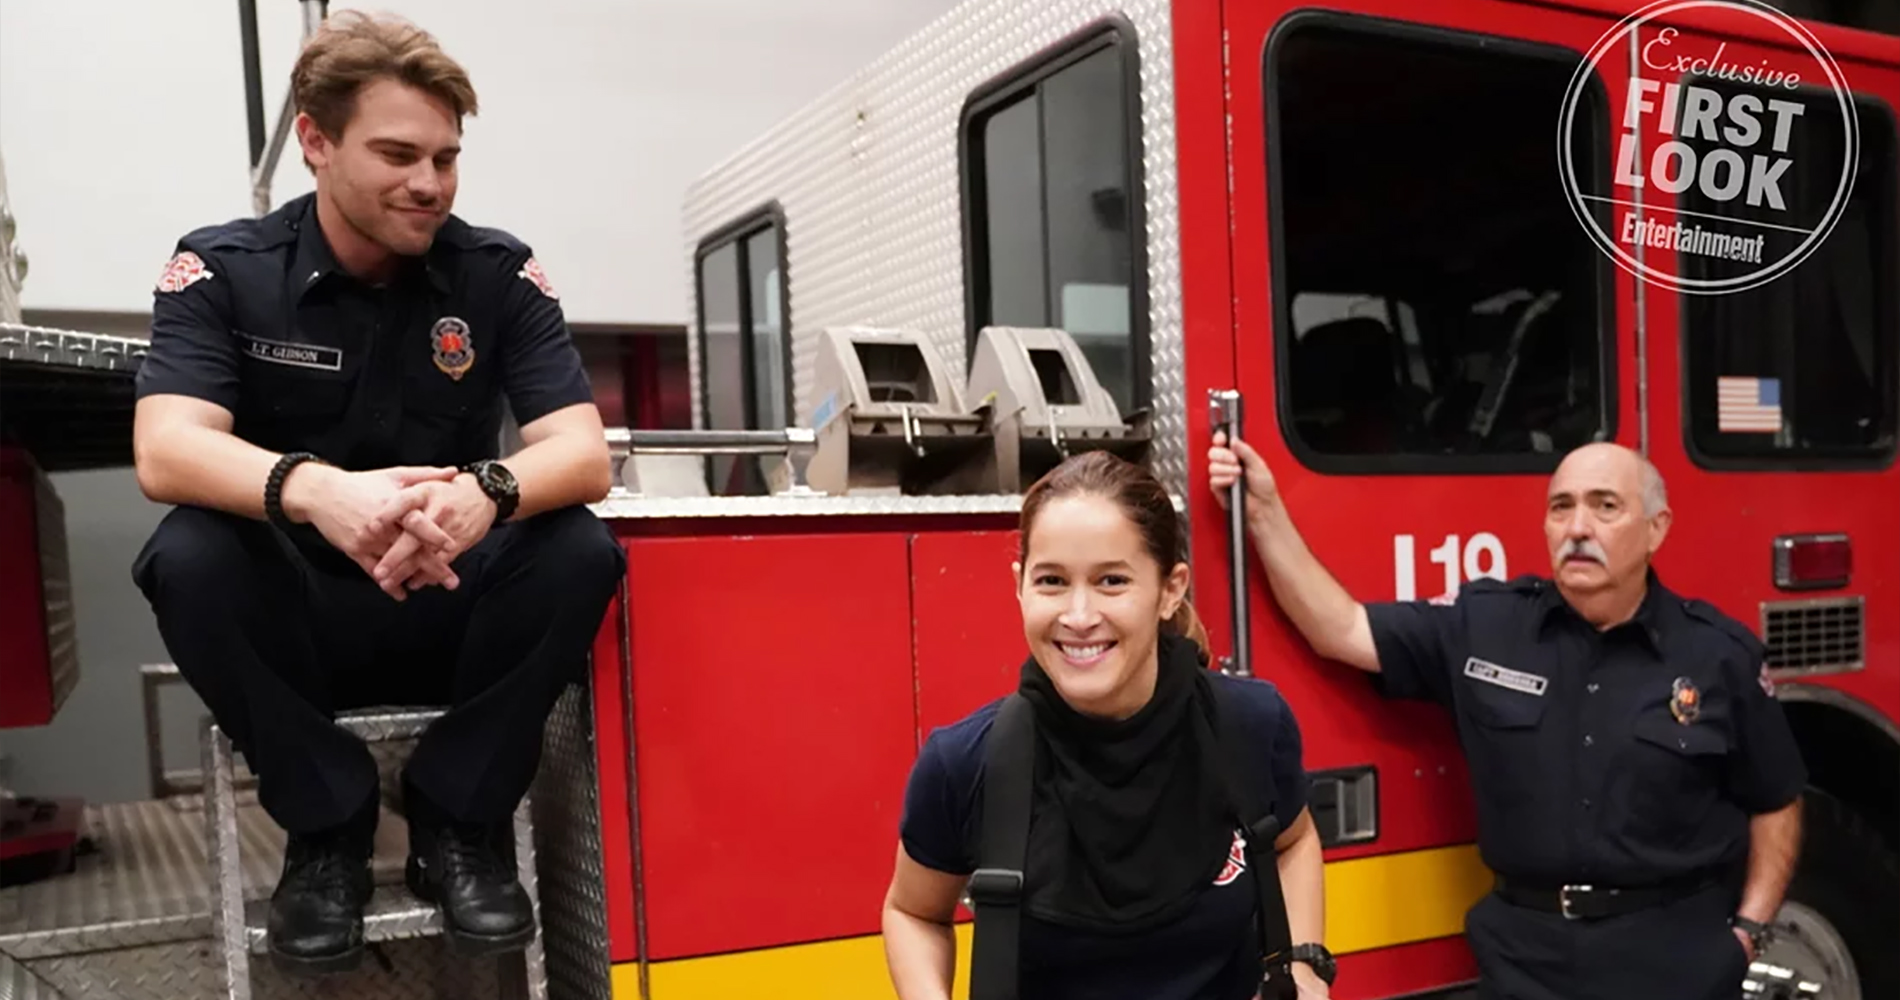 grey's anatomy, firefighter spinoff, premiere date, spoilers